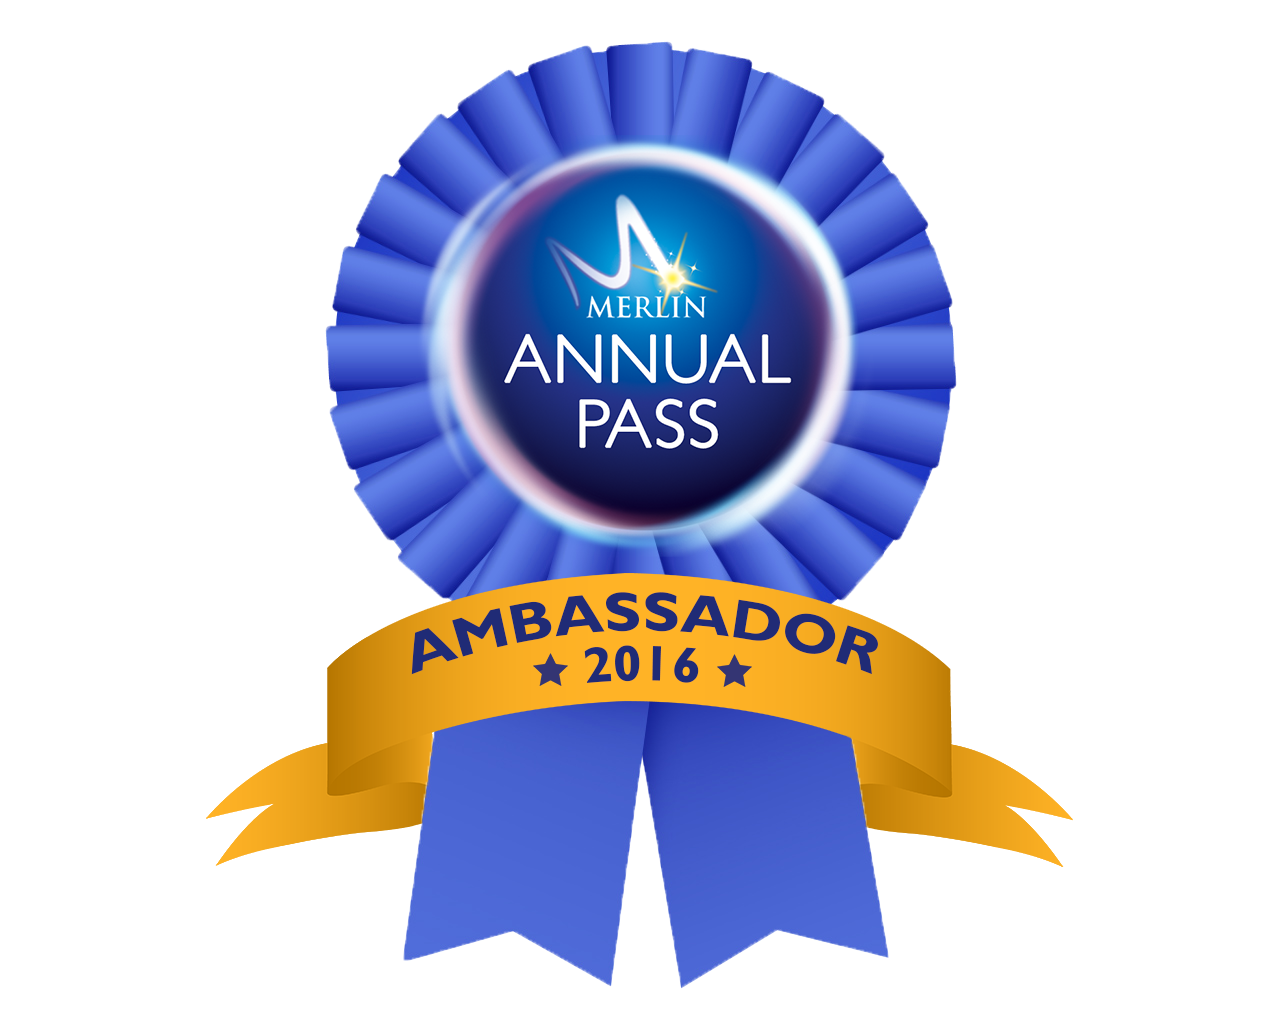 Merlin Annual Pass Blogger Ambassadors